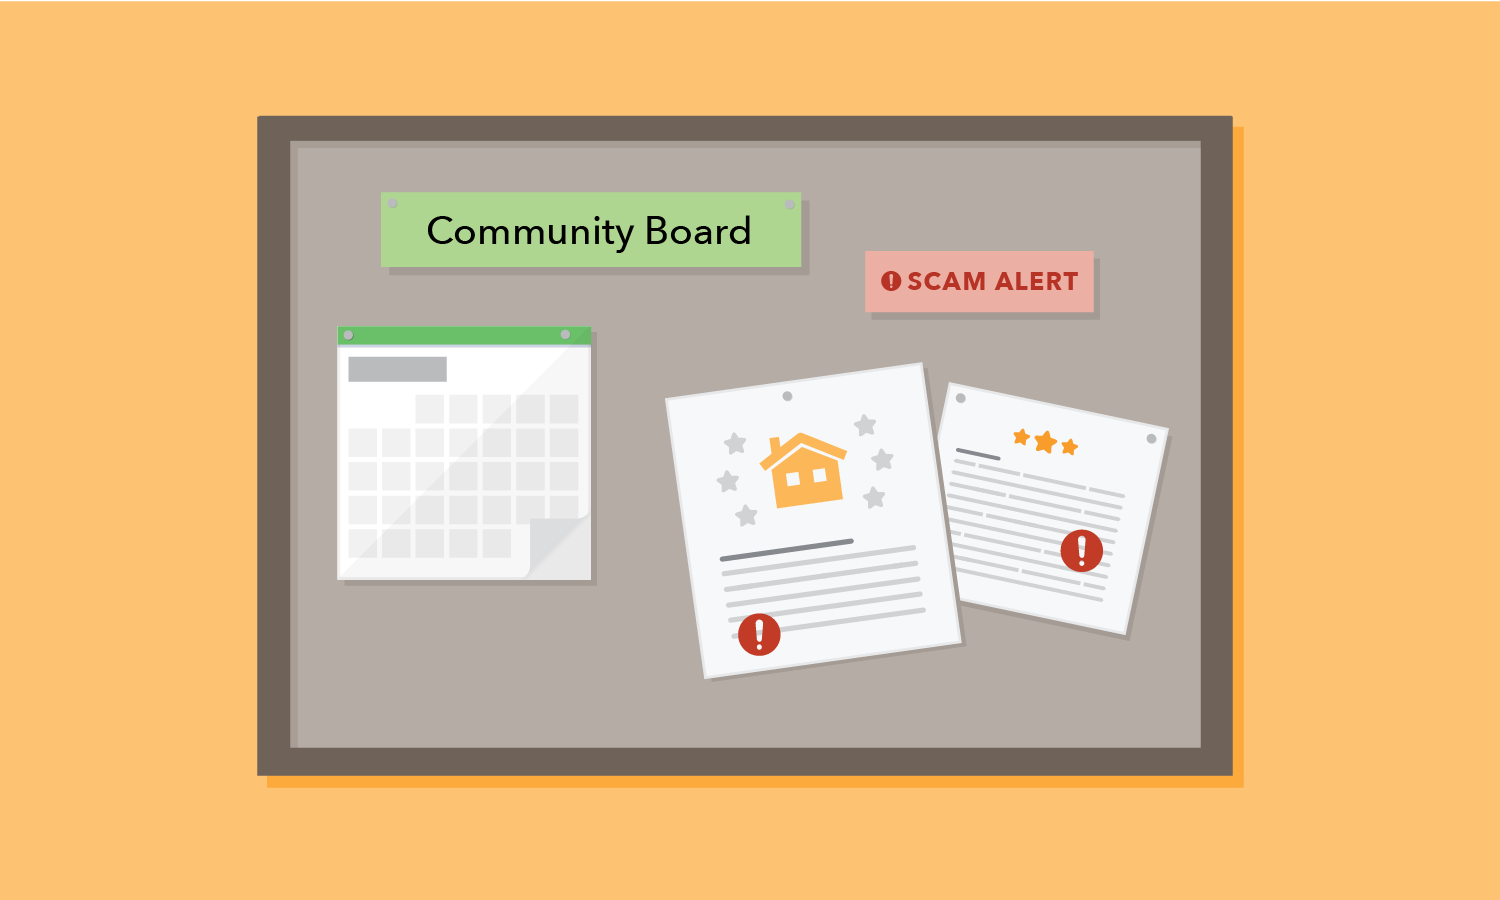 Community board with scam alerts